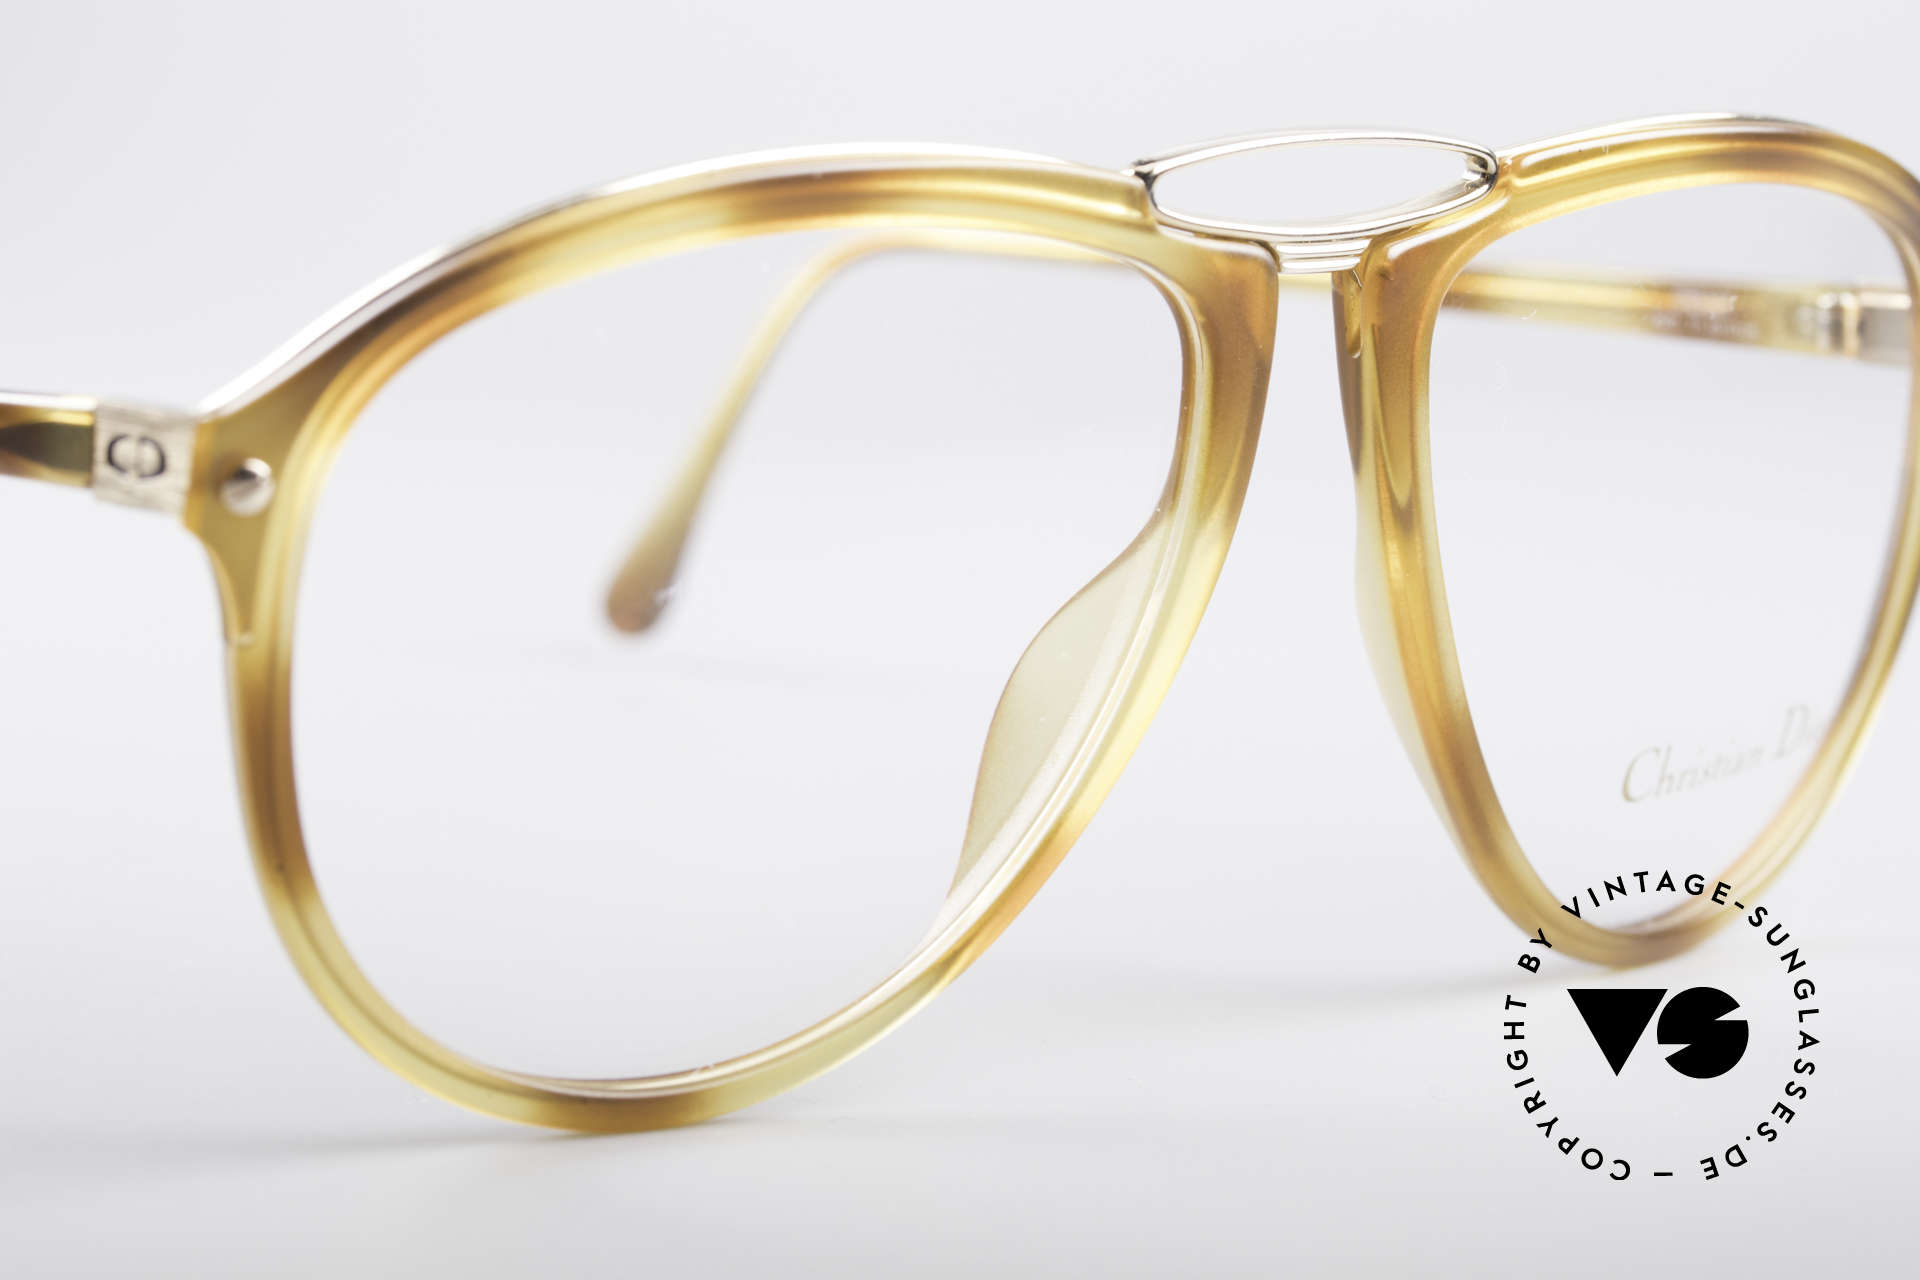 Christian Dior 2523 80's No Retro Glasses Men, new old stock (like all our vintage 80's Dior glasses), Made for Men